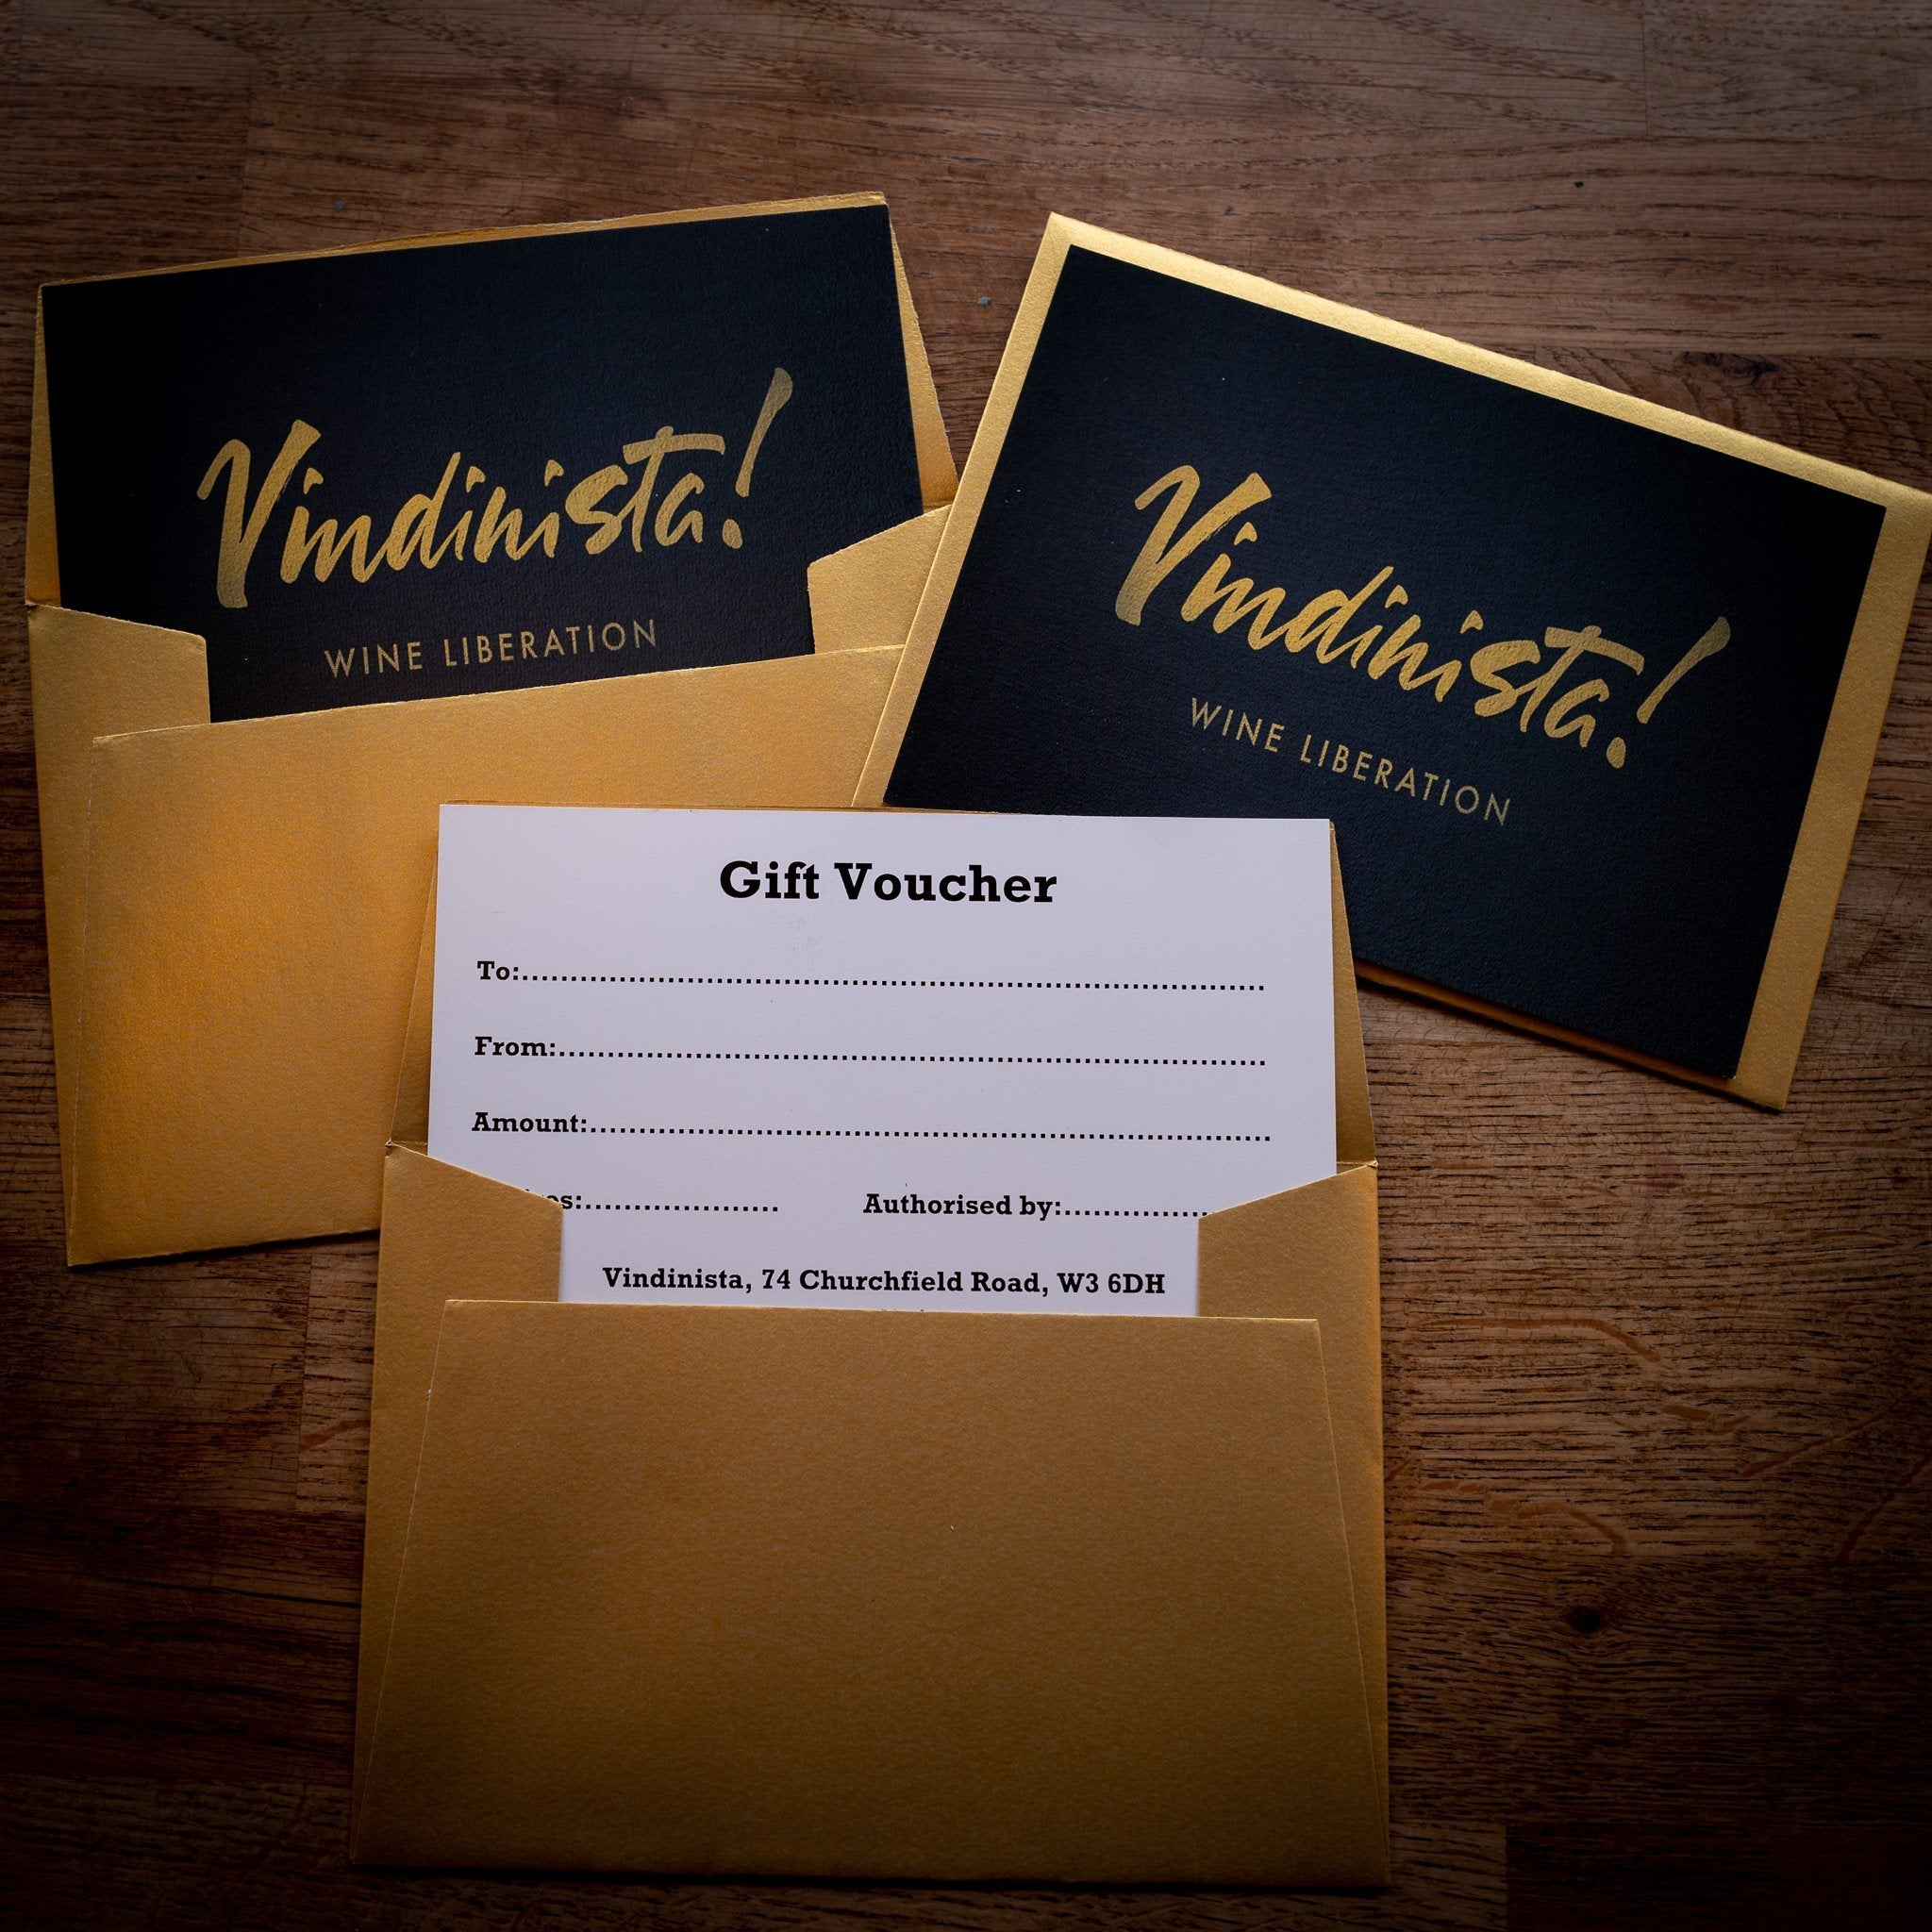 The £25 Gift Voucher - Vindinista